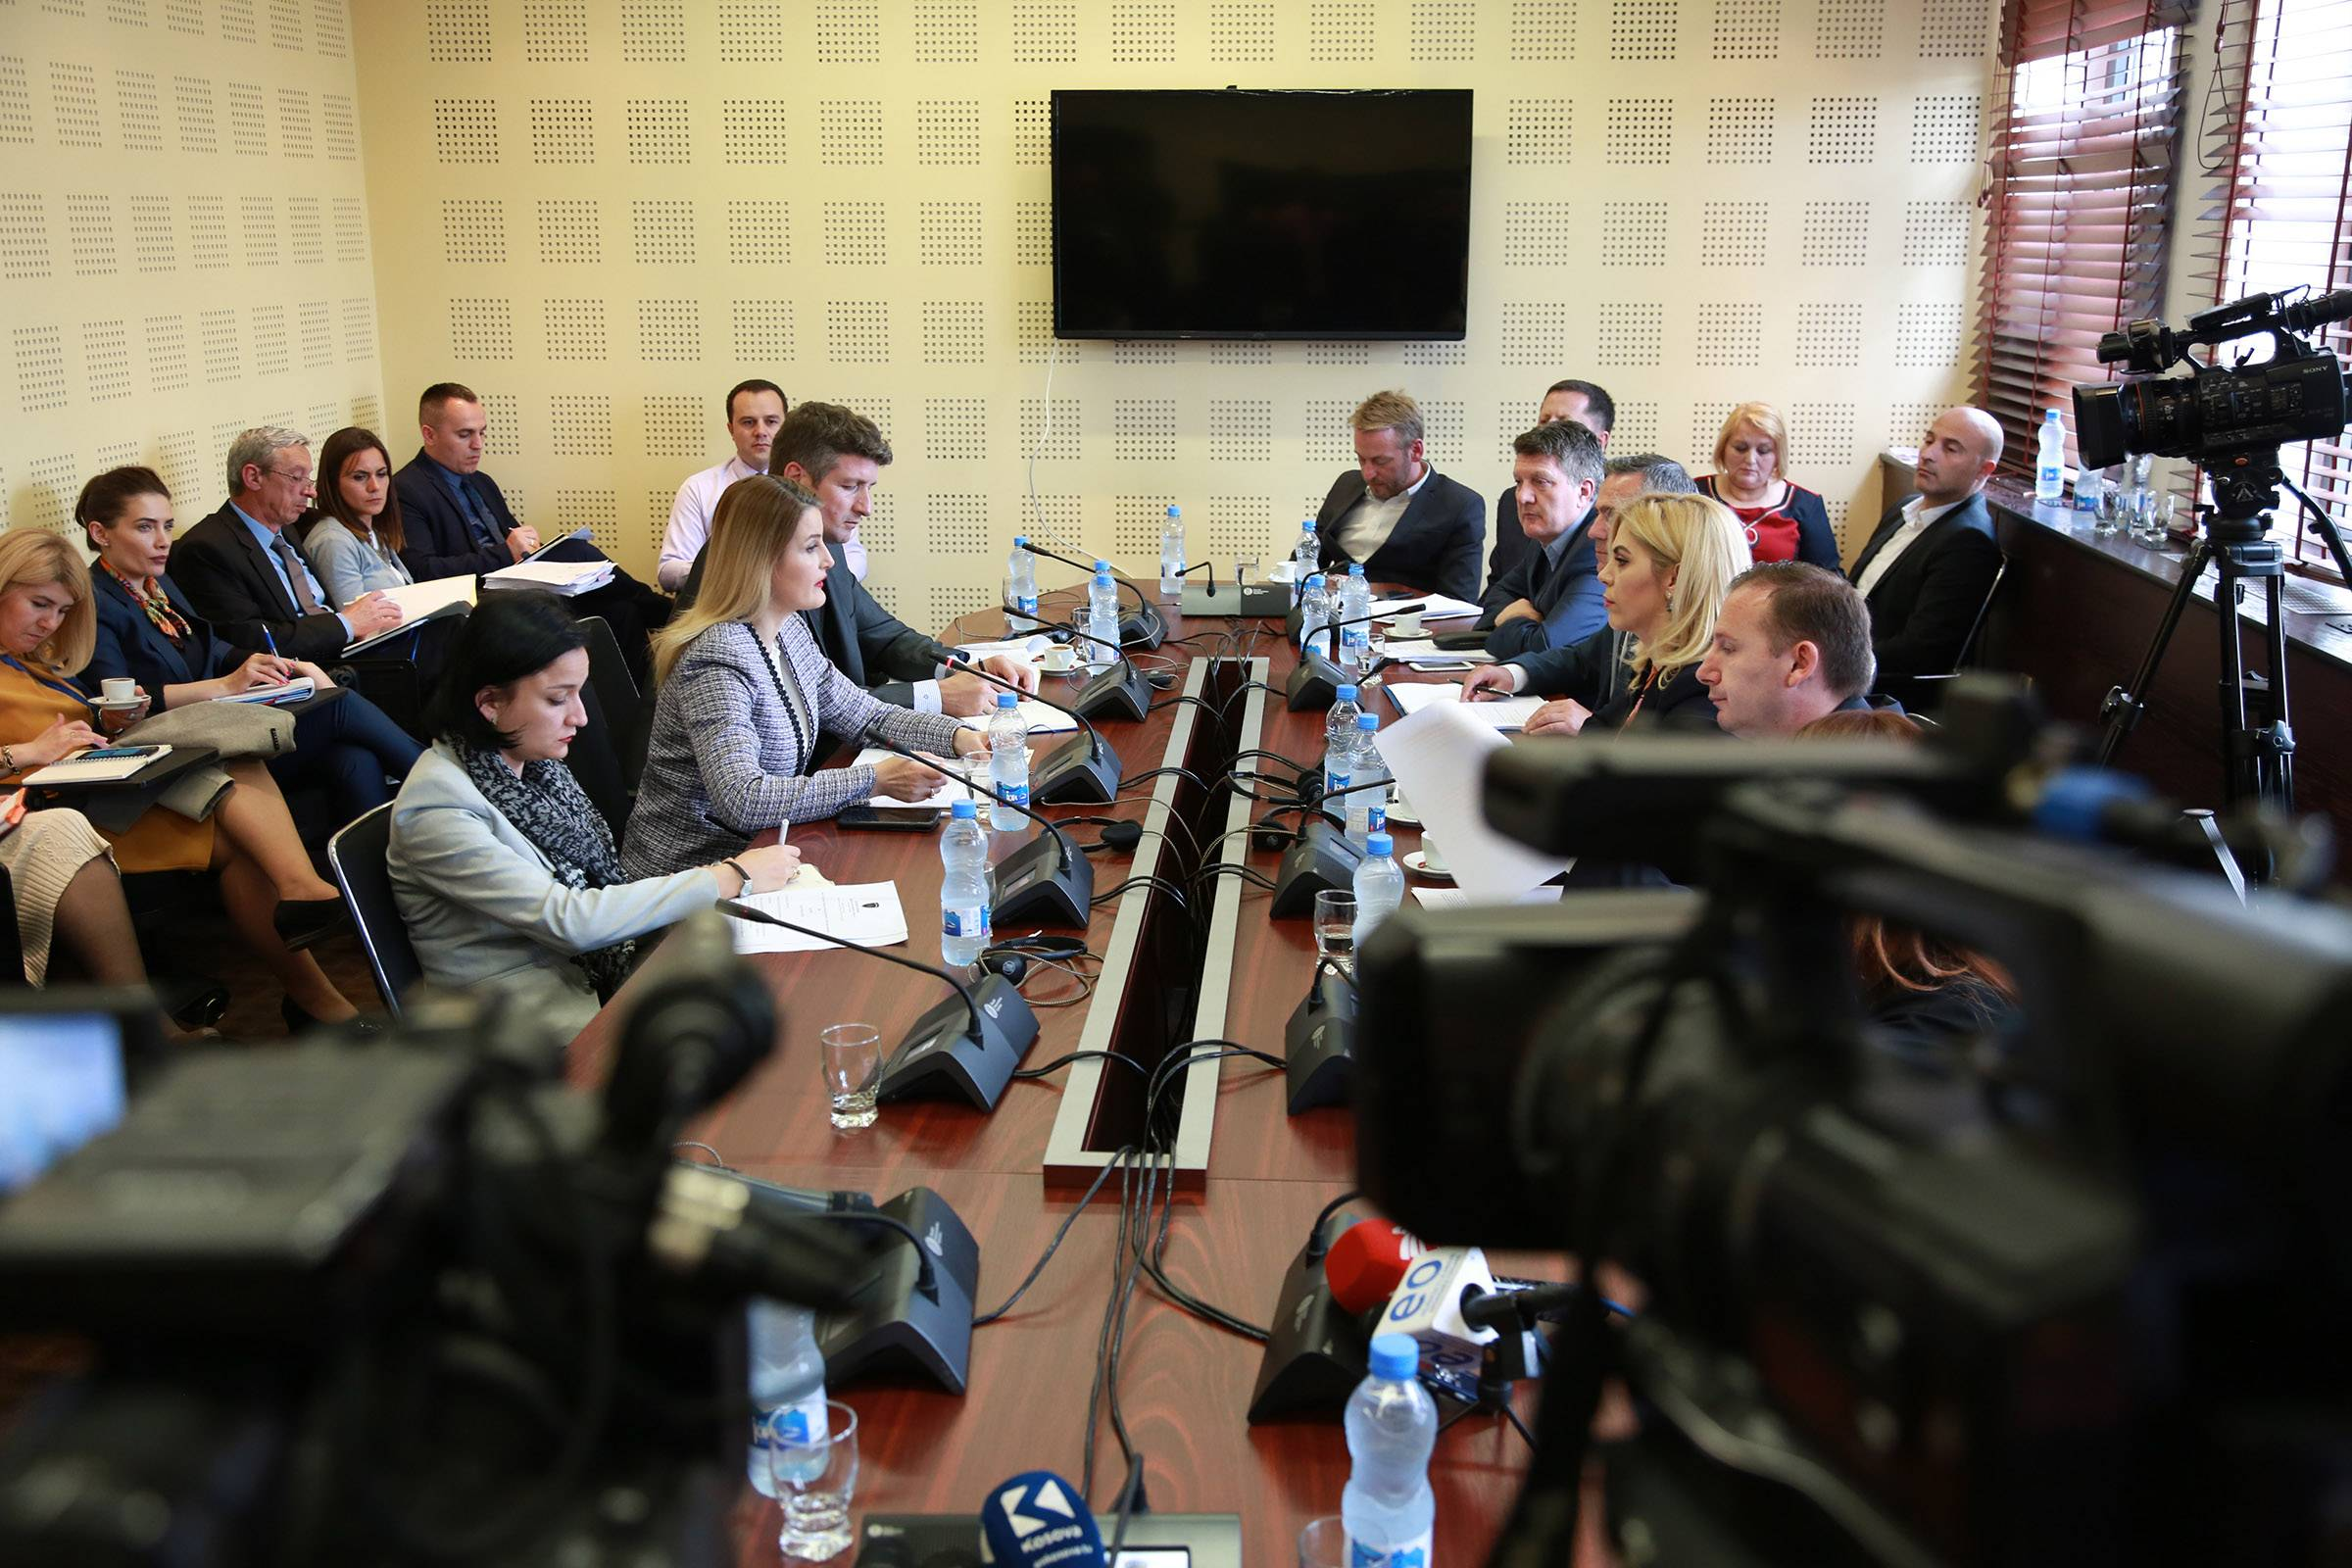 Minister Hoxha at the Committee for European Integration: The country report is positive and evidences progress